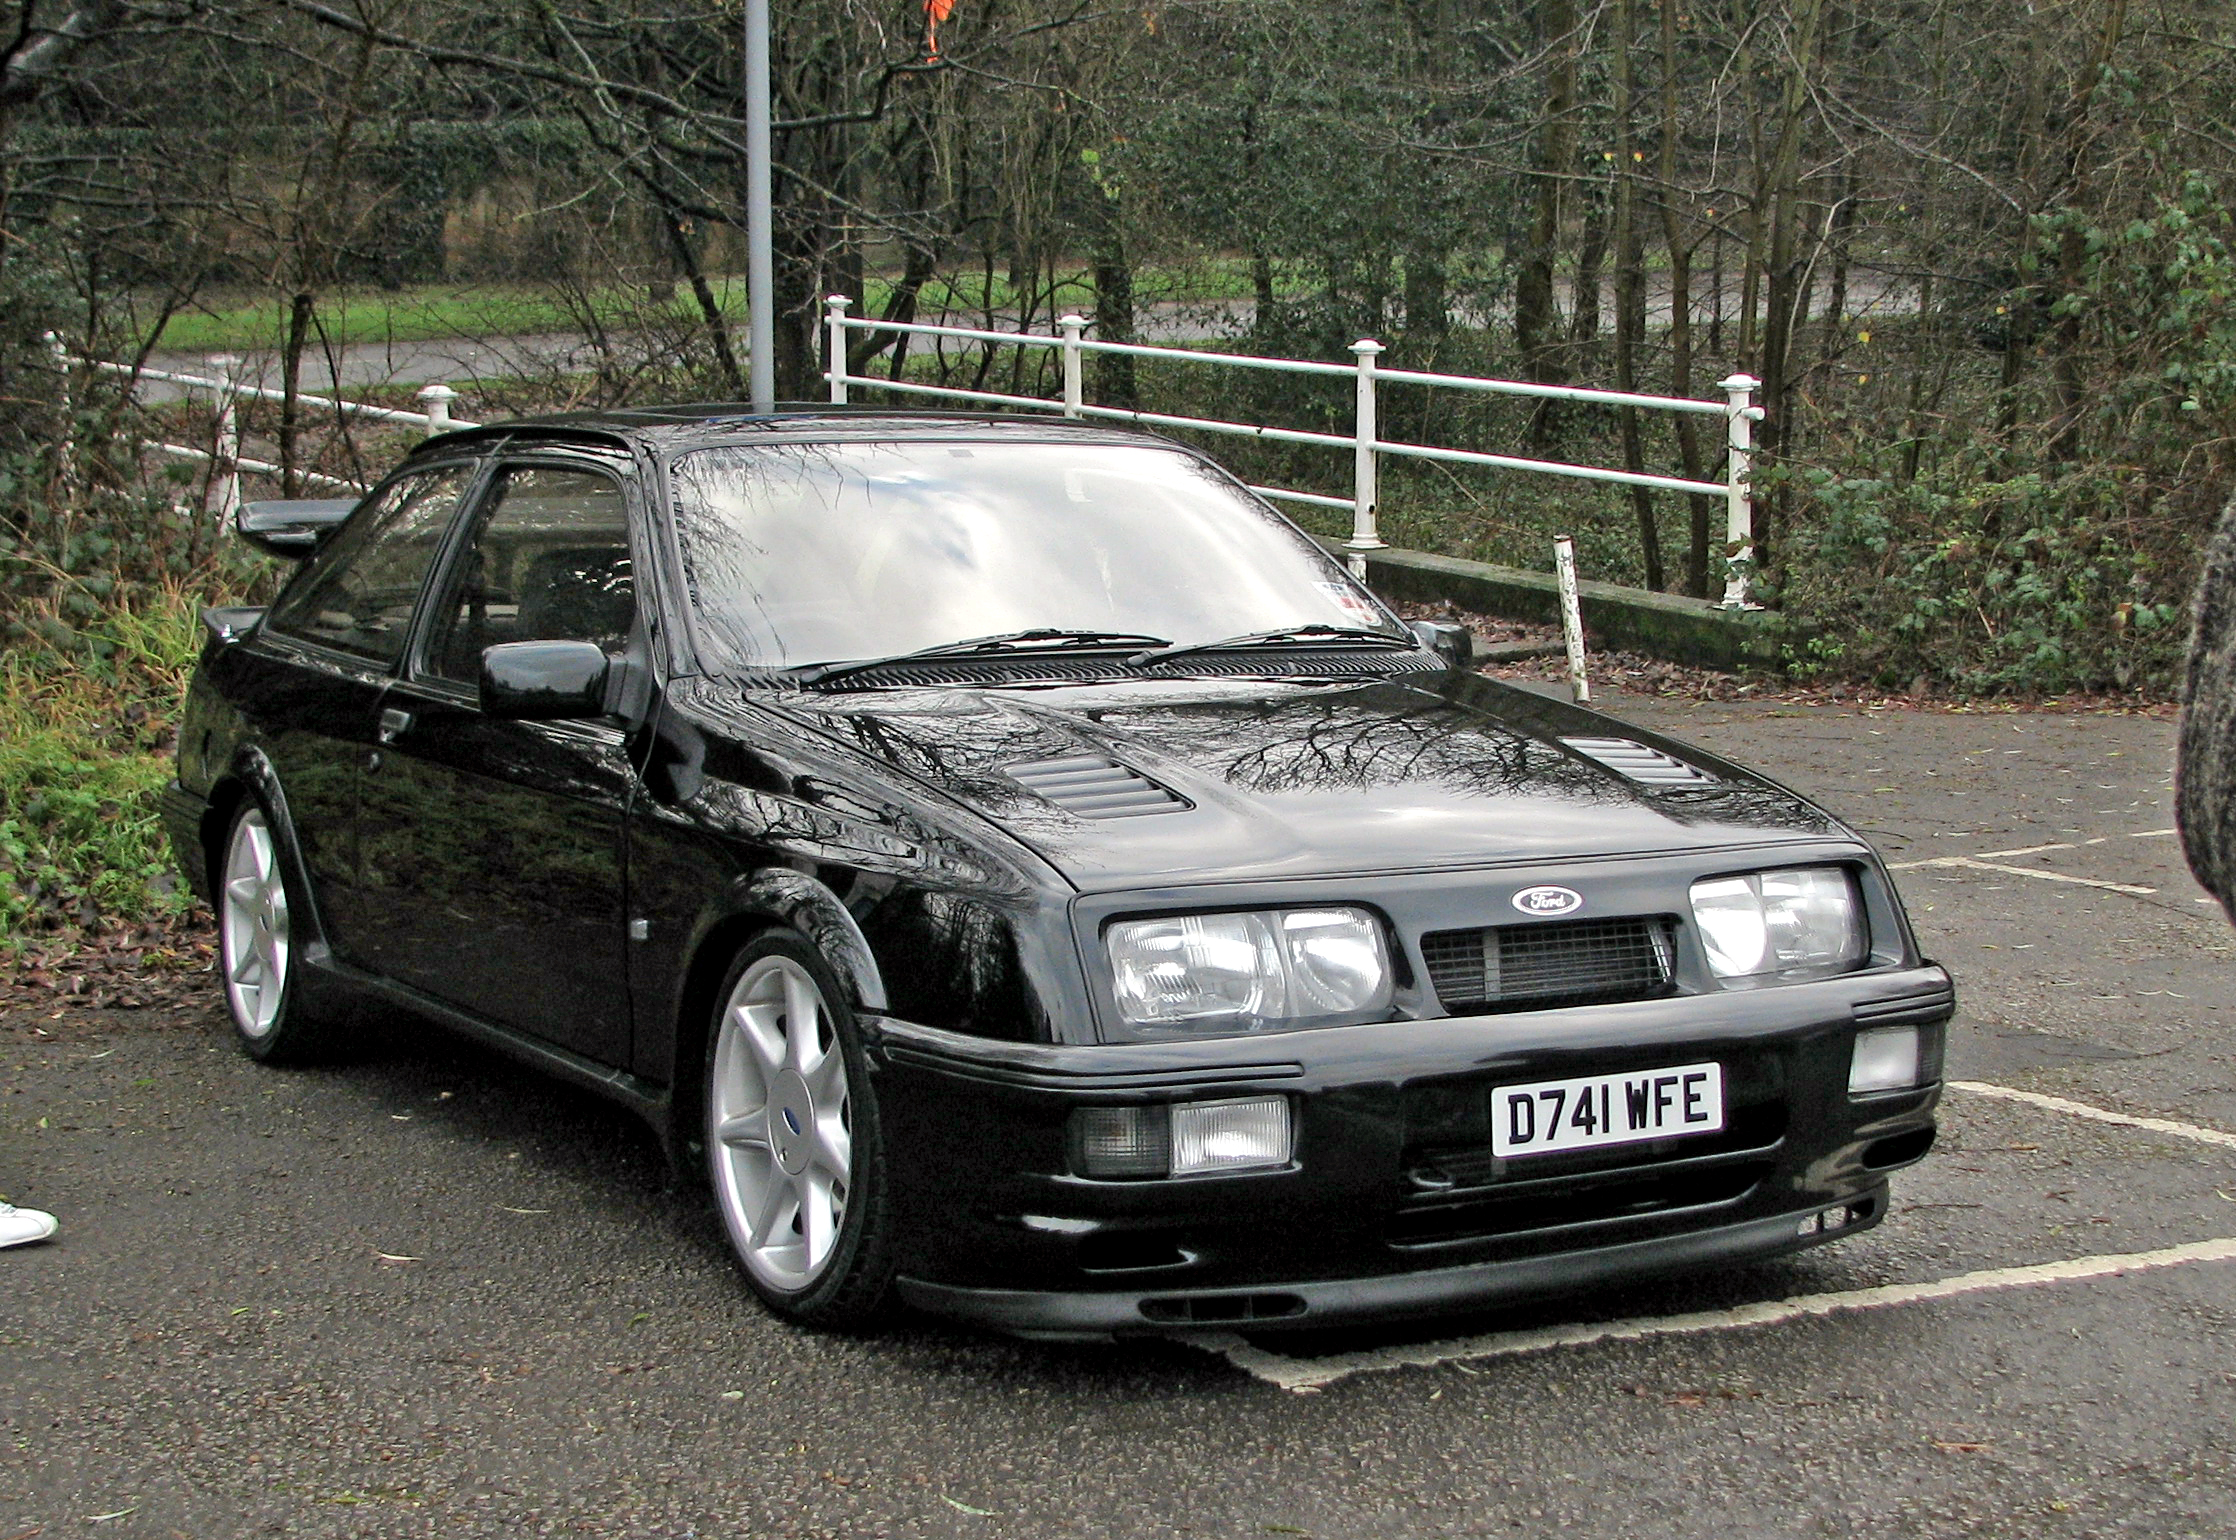 ford sierra cosworth photos news reviews specs car listings. Black Bedroom Furniture Sets. Home Design Ideas